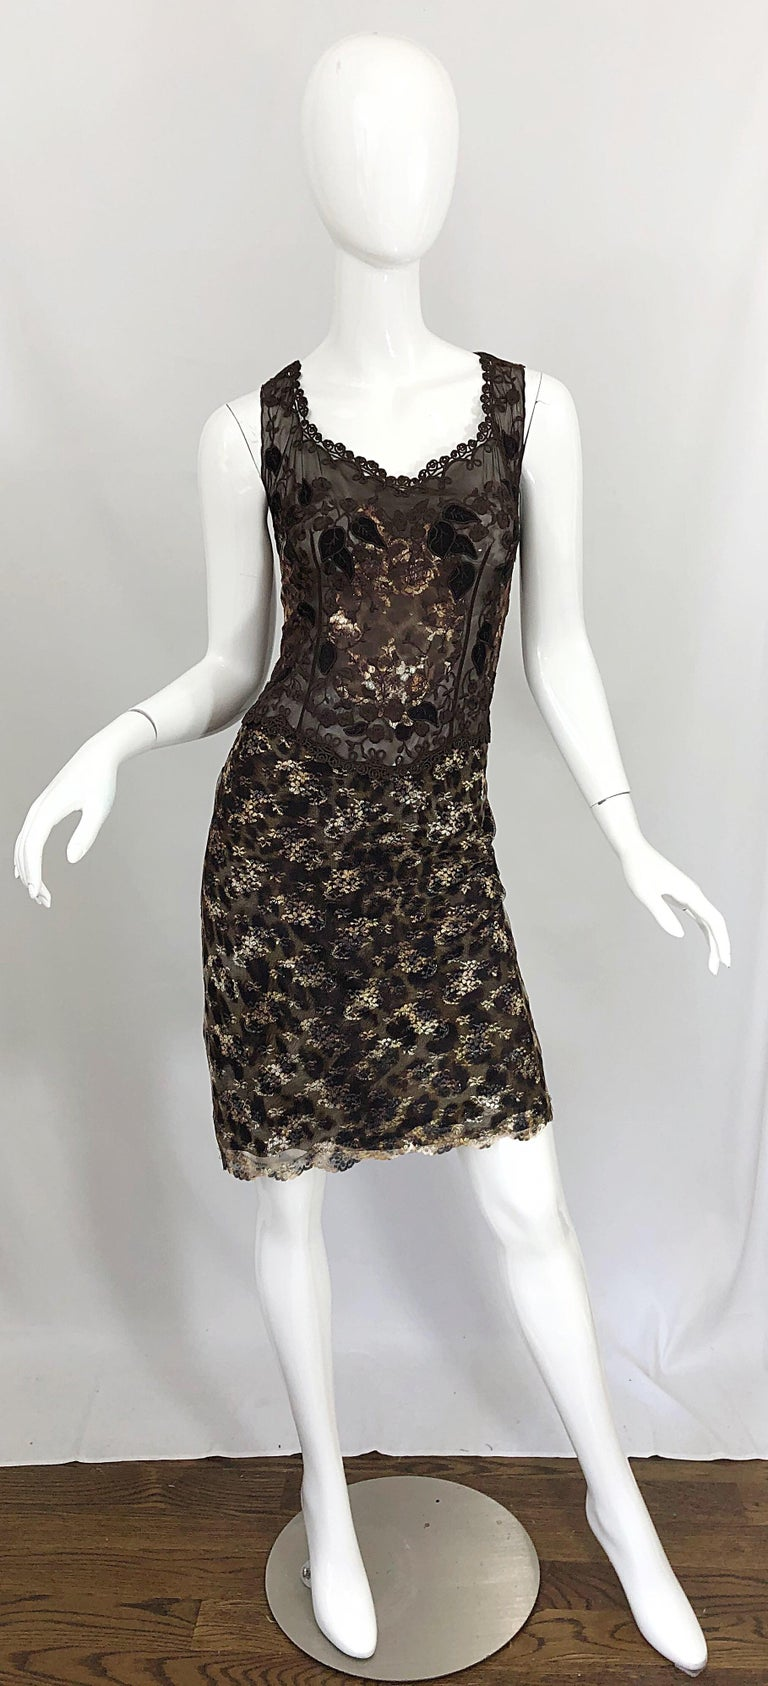 Sexy late 90s GAI MATTIOLO vintage semi sheer leopard print brown semi sheer sleeveless dress! Features intricate embroidery on the bodice, which covers the breasts. Gold, silver and bronze metallic embroidery throughout the entire dress. Hidden